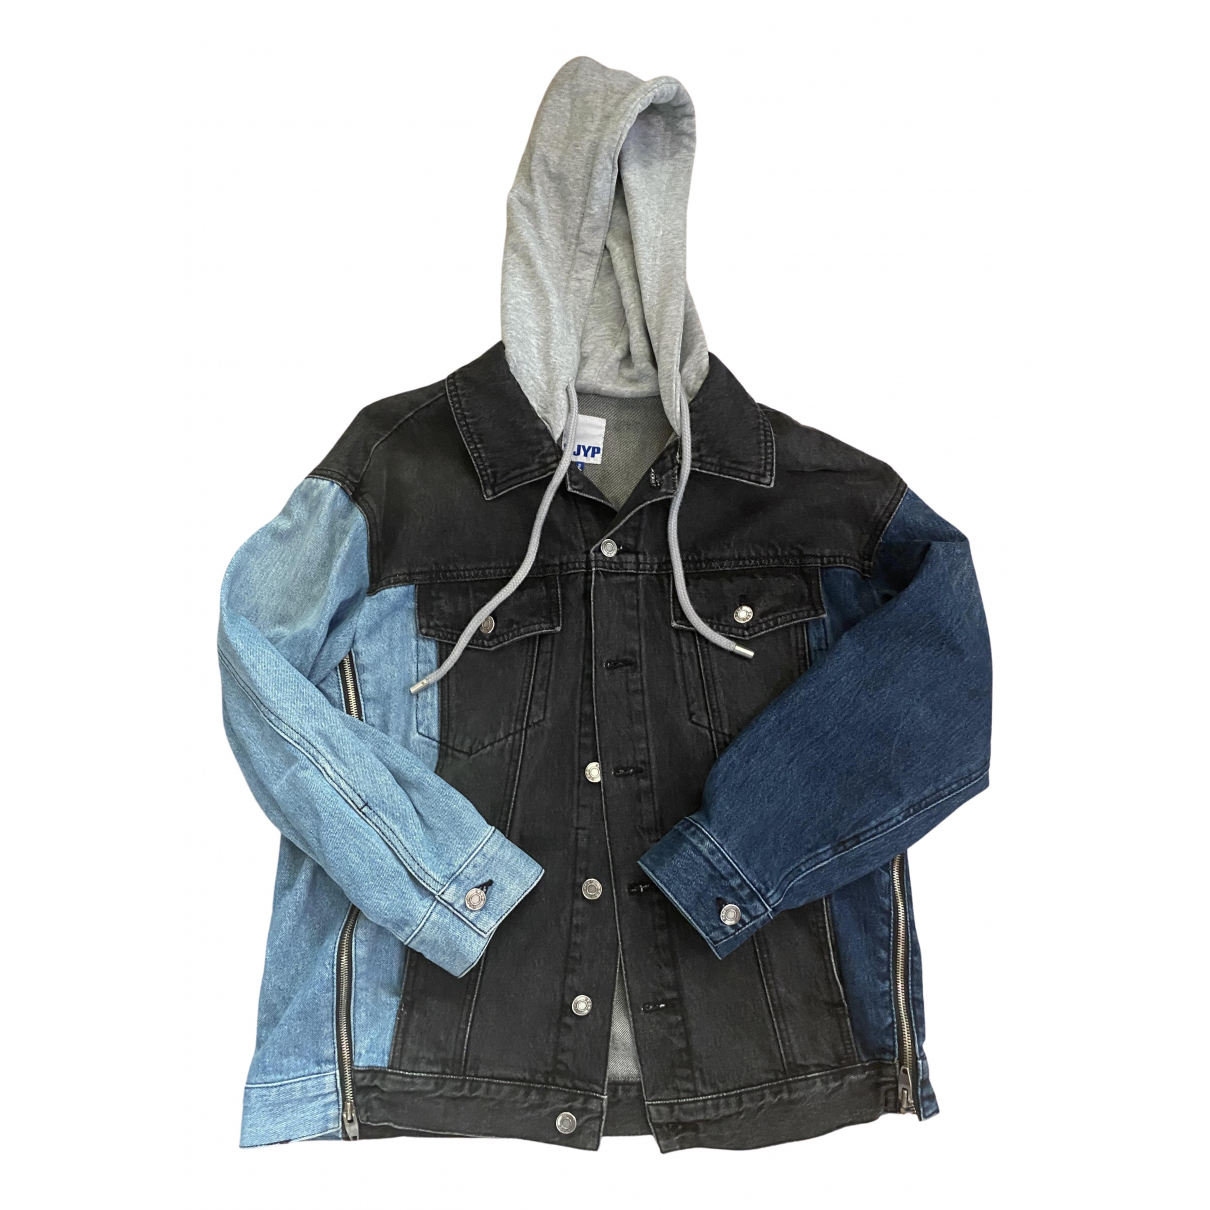 Sjyp \N Blue Denim - Jeans jacket for Women 36 FR